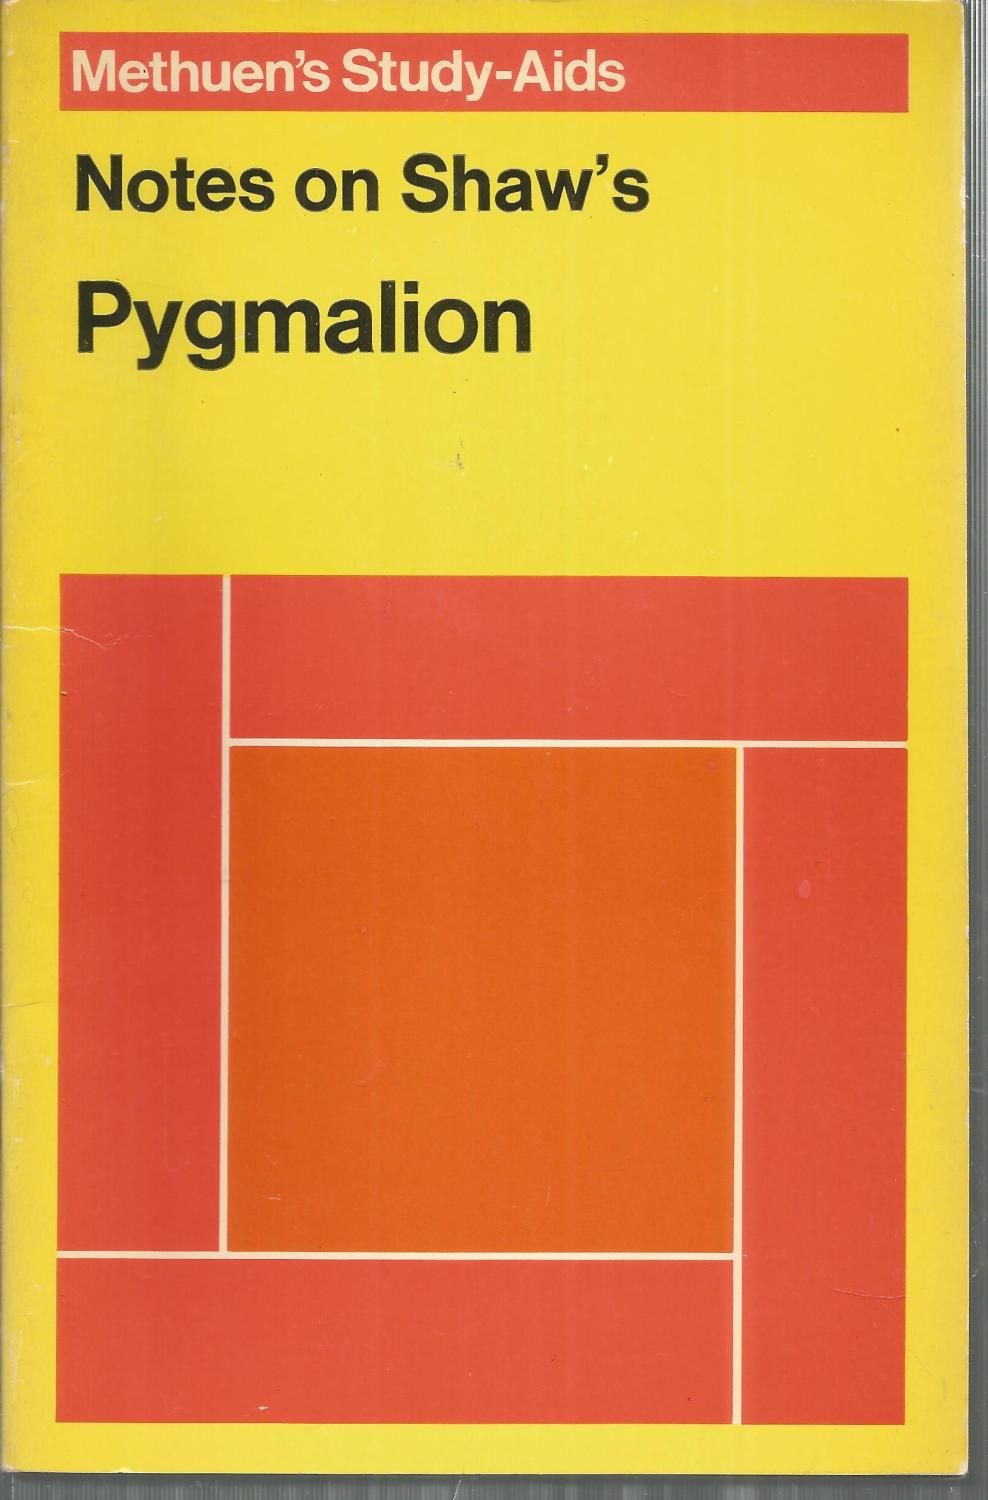 Editoriales De Libros En Ingles Notes On Shaw S Pygmalion Study Aid Series